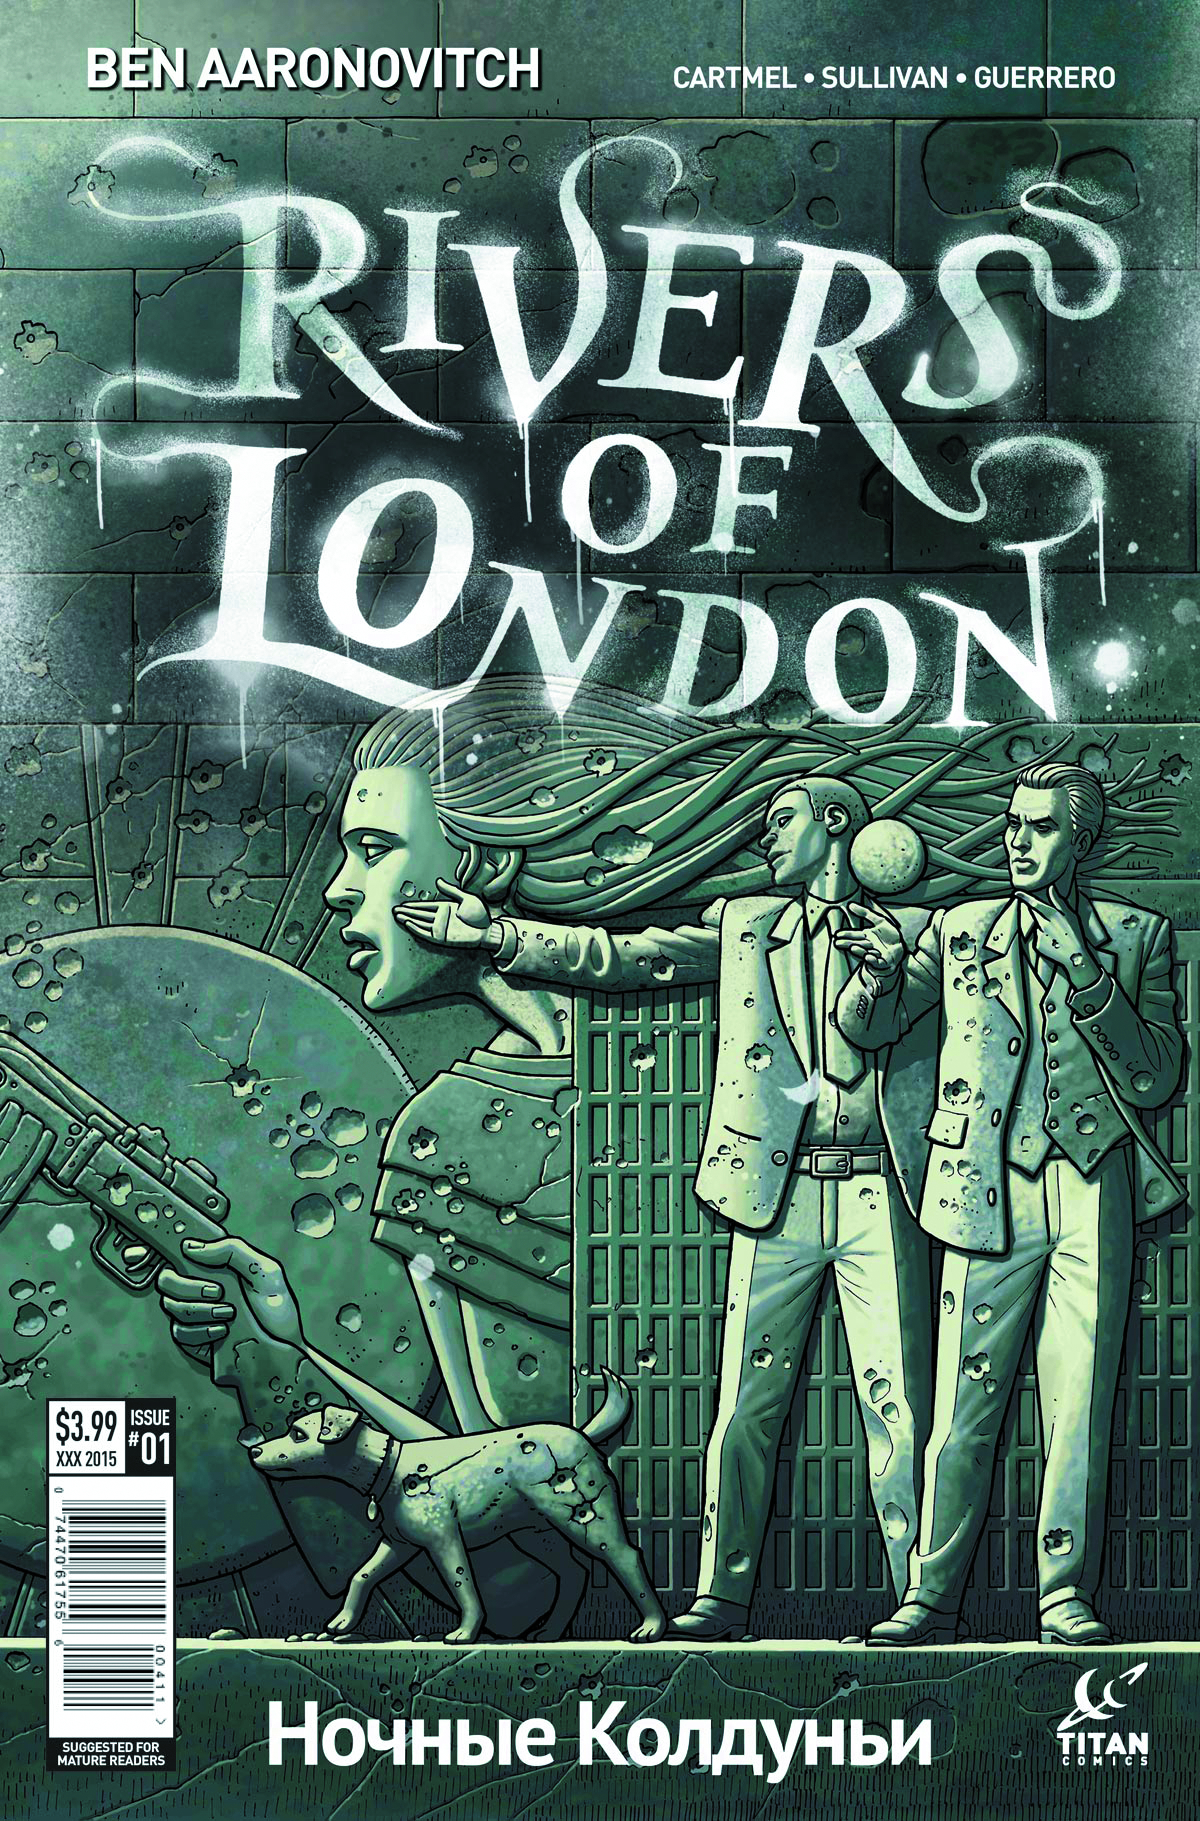 RIVERS OF LONDON NIGHT WITCH #1 (OF 5) CVR A MCCAFFREY